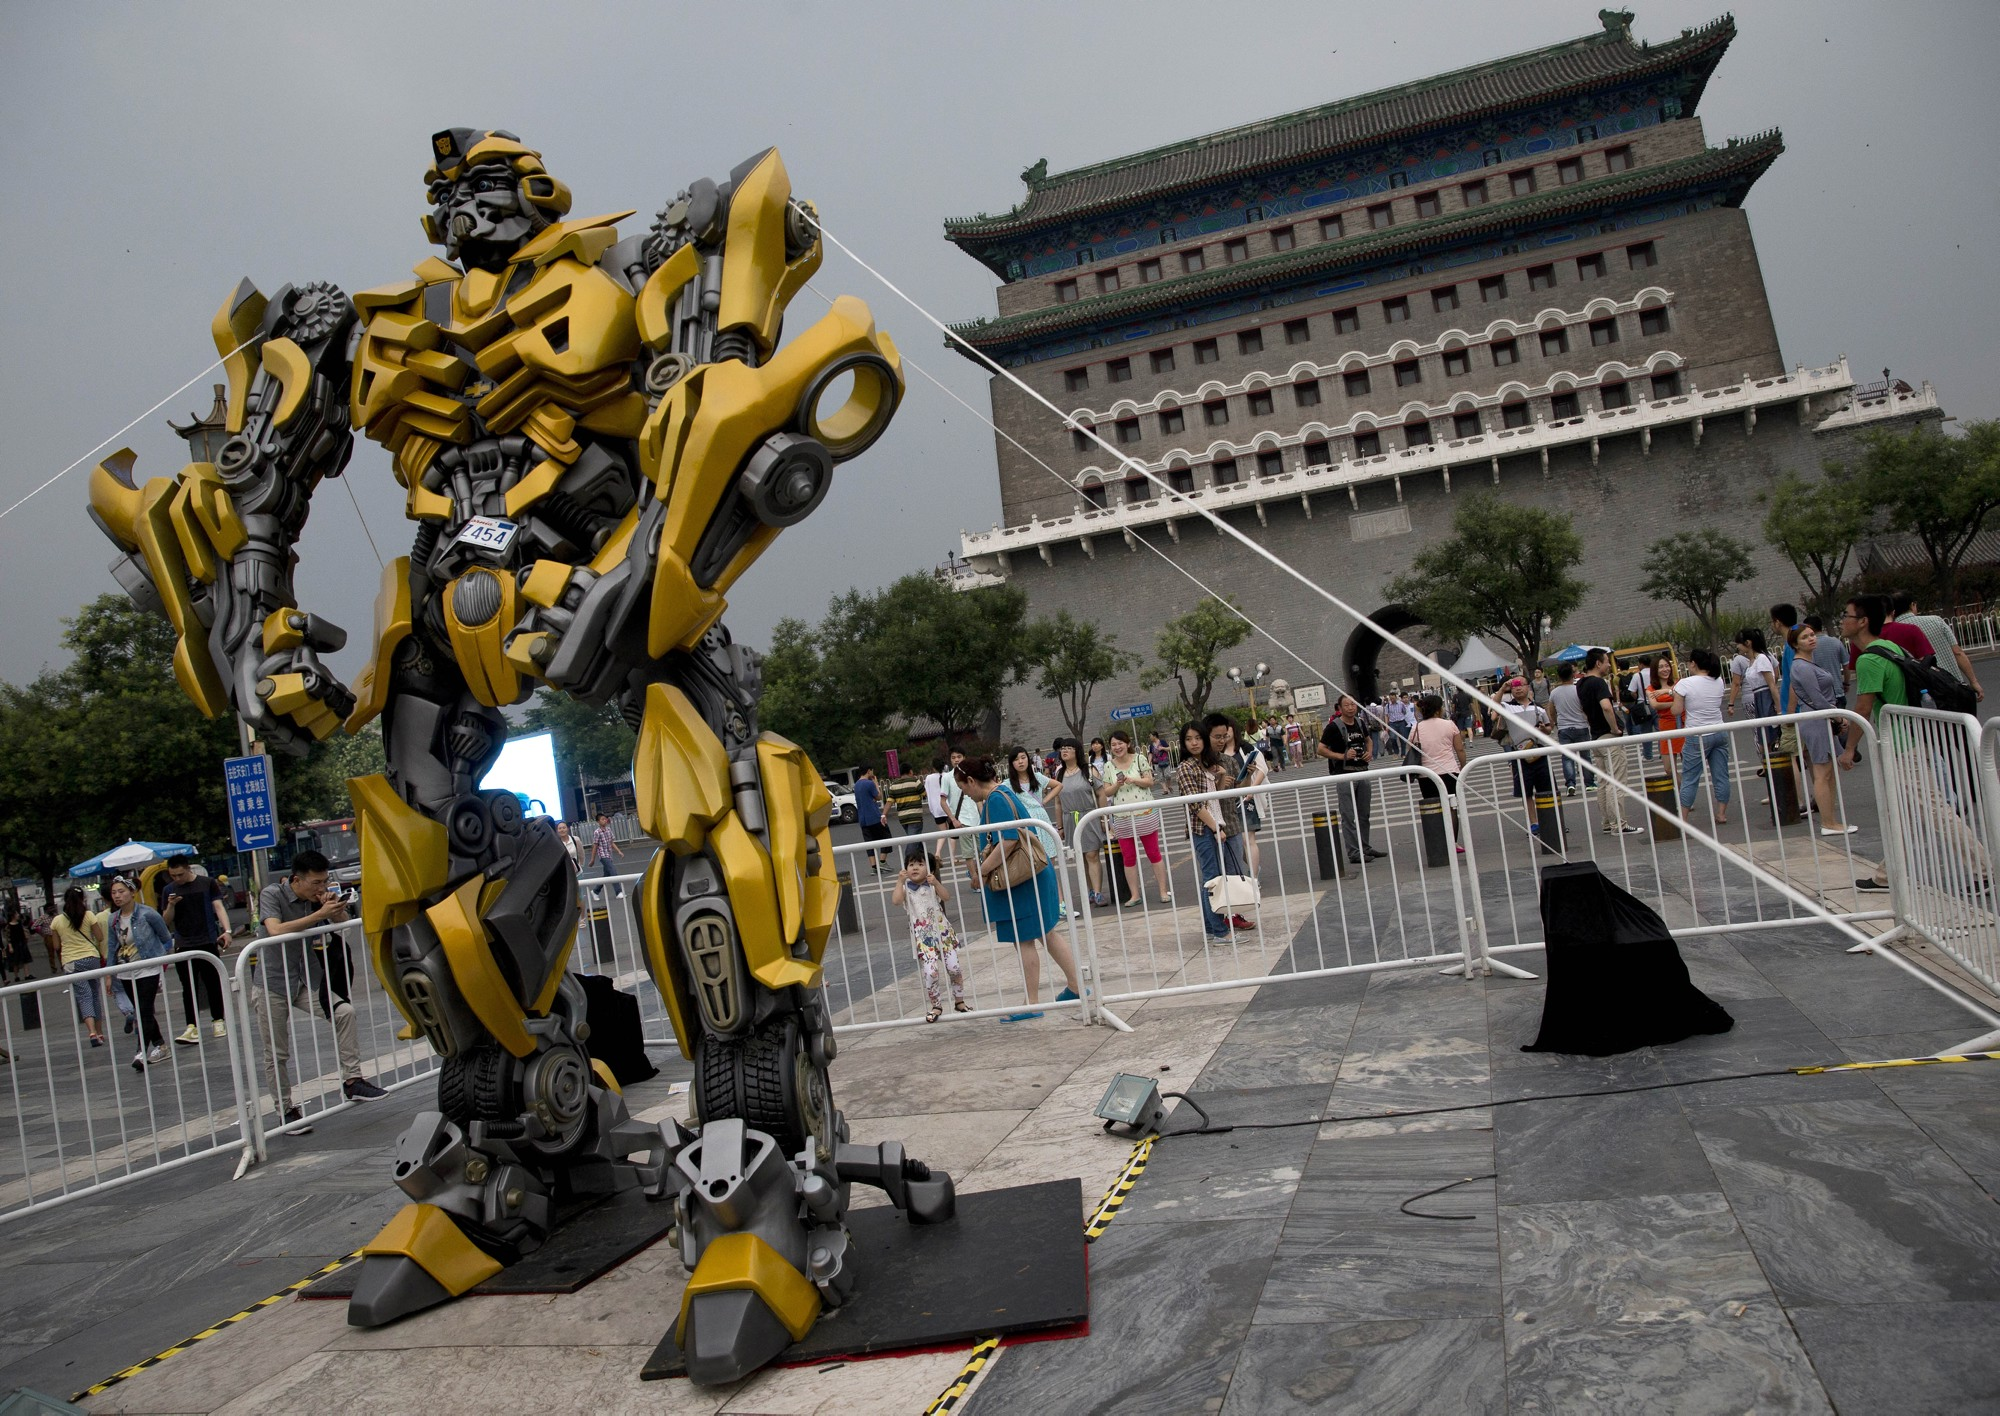 A replica of Transformers: Age of Extinction's Bumblebee was quickly set up in Beijing after the Pangu Plaza sued Paramount over product placement dispute.